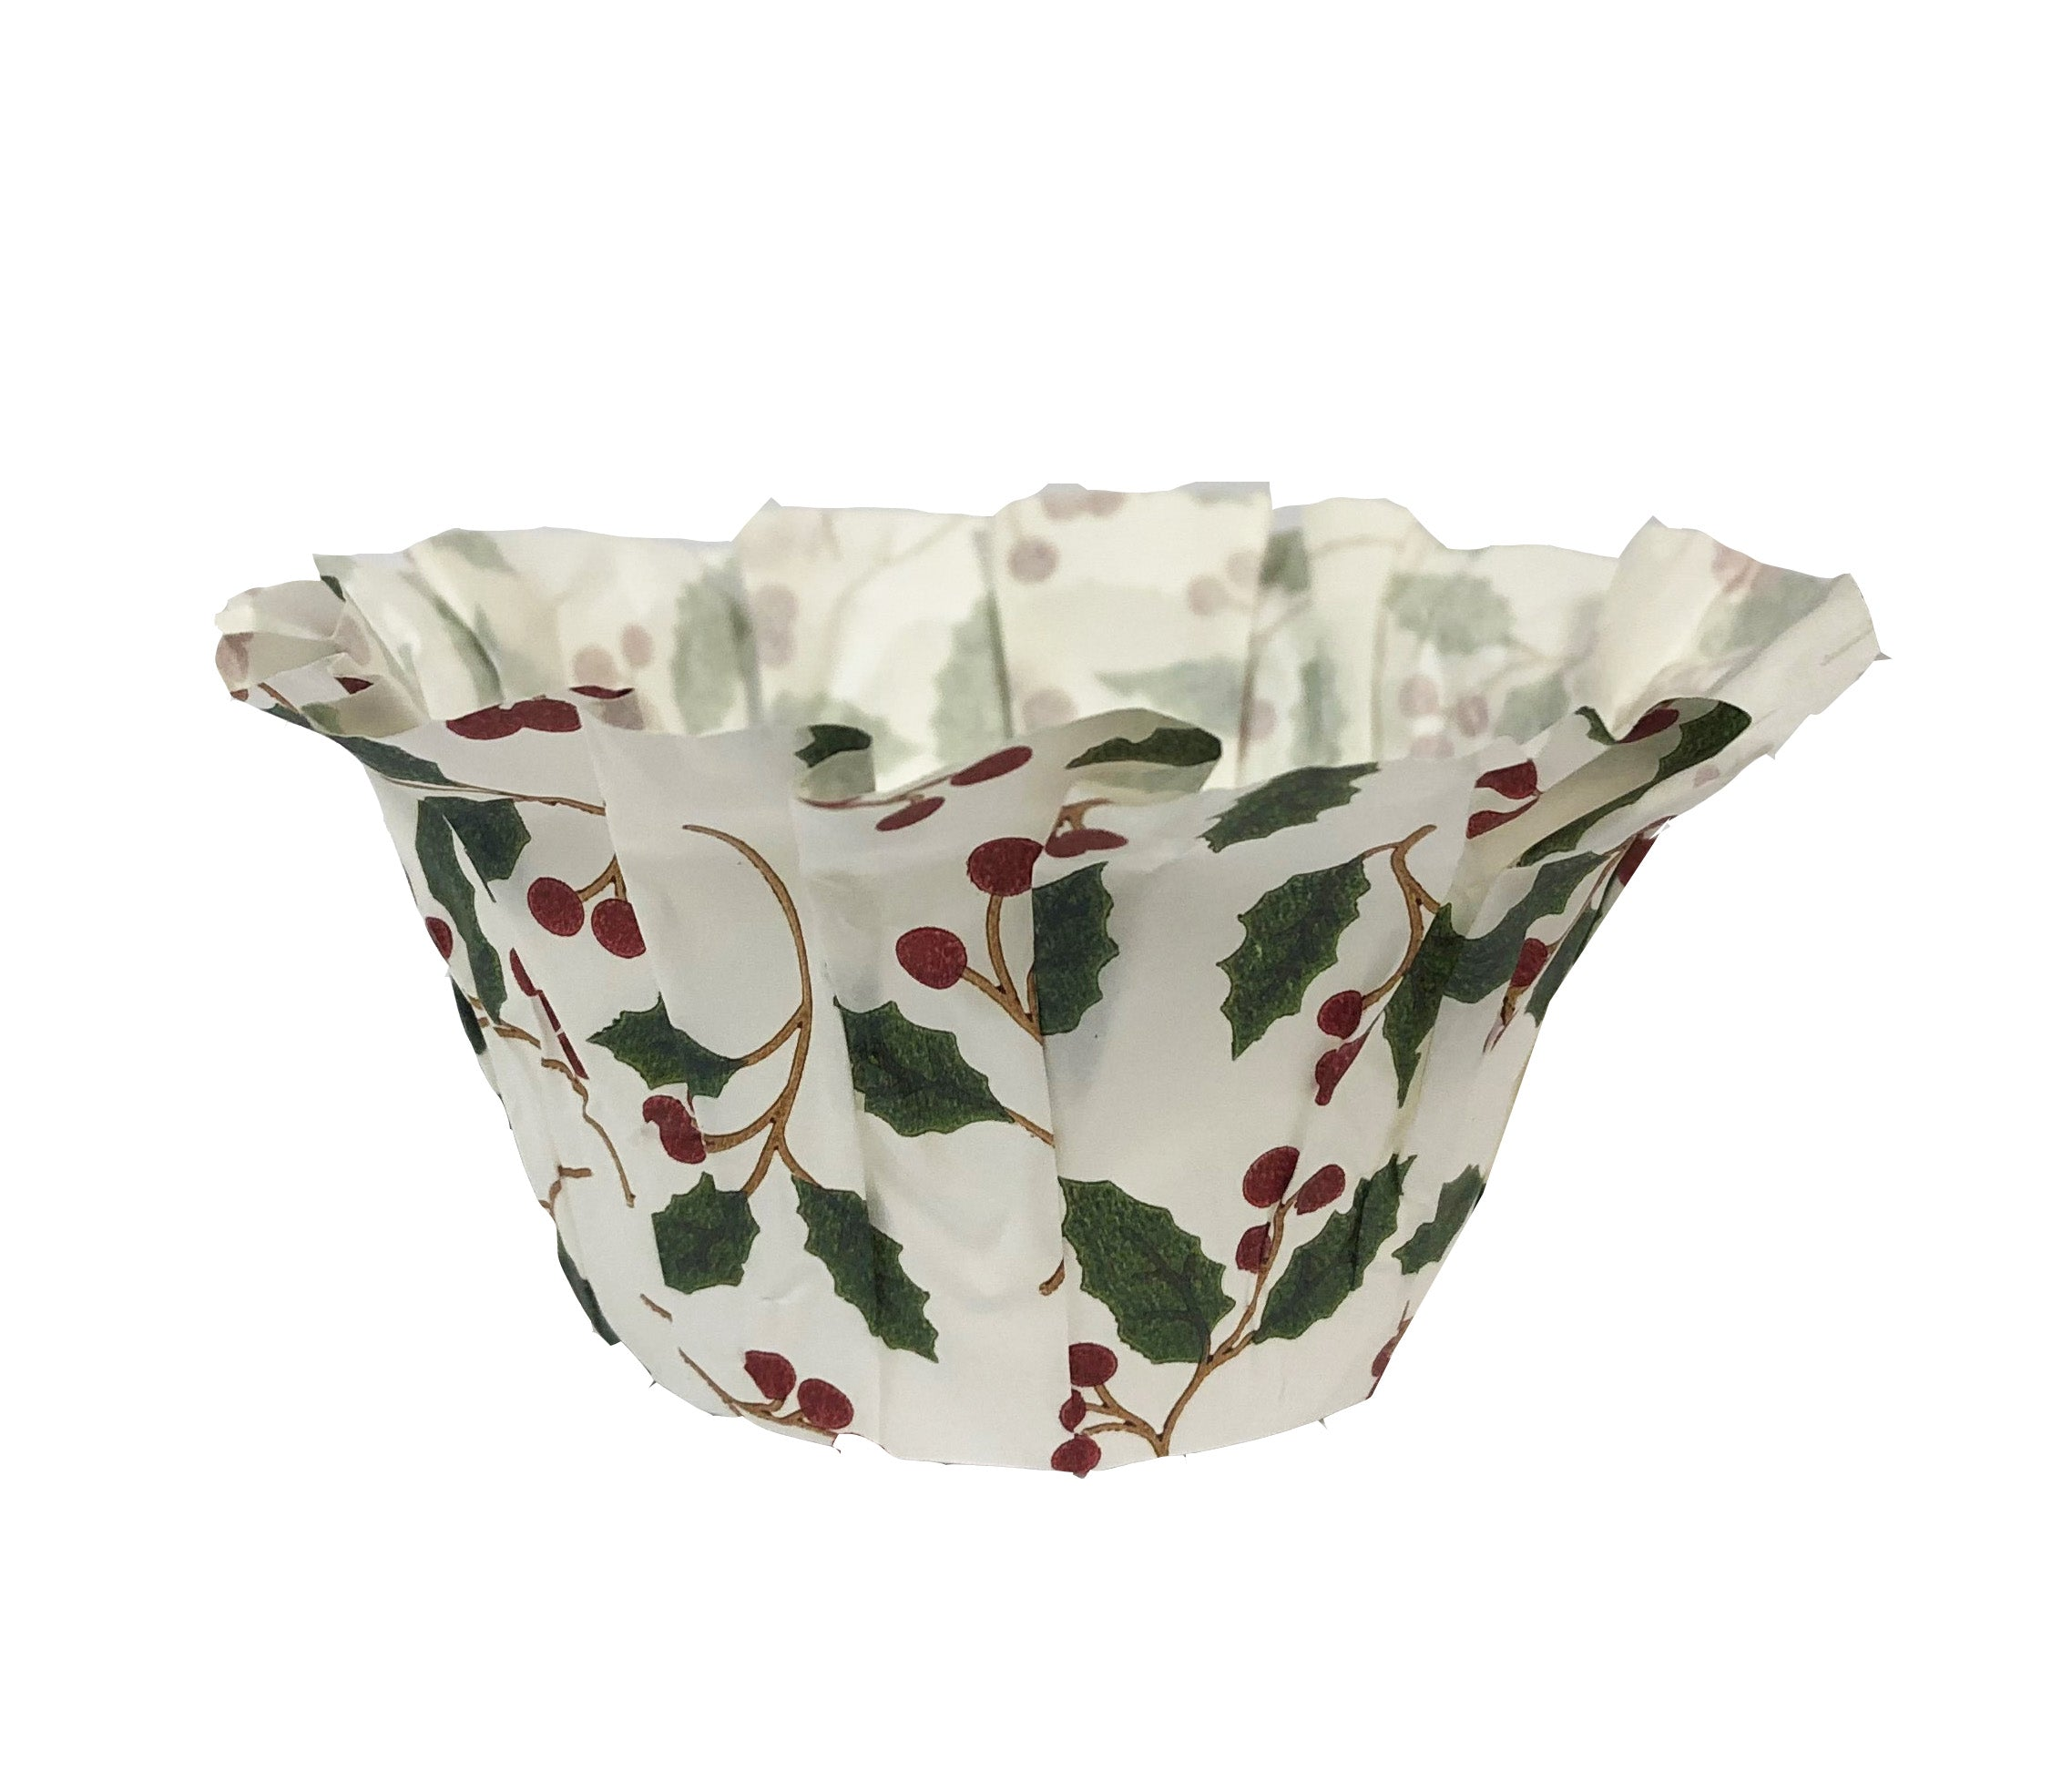 Muffin Baskets, TG0055 - Welcome Home Brands